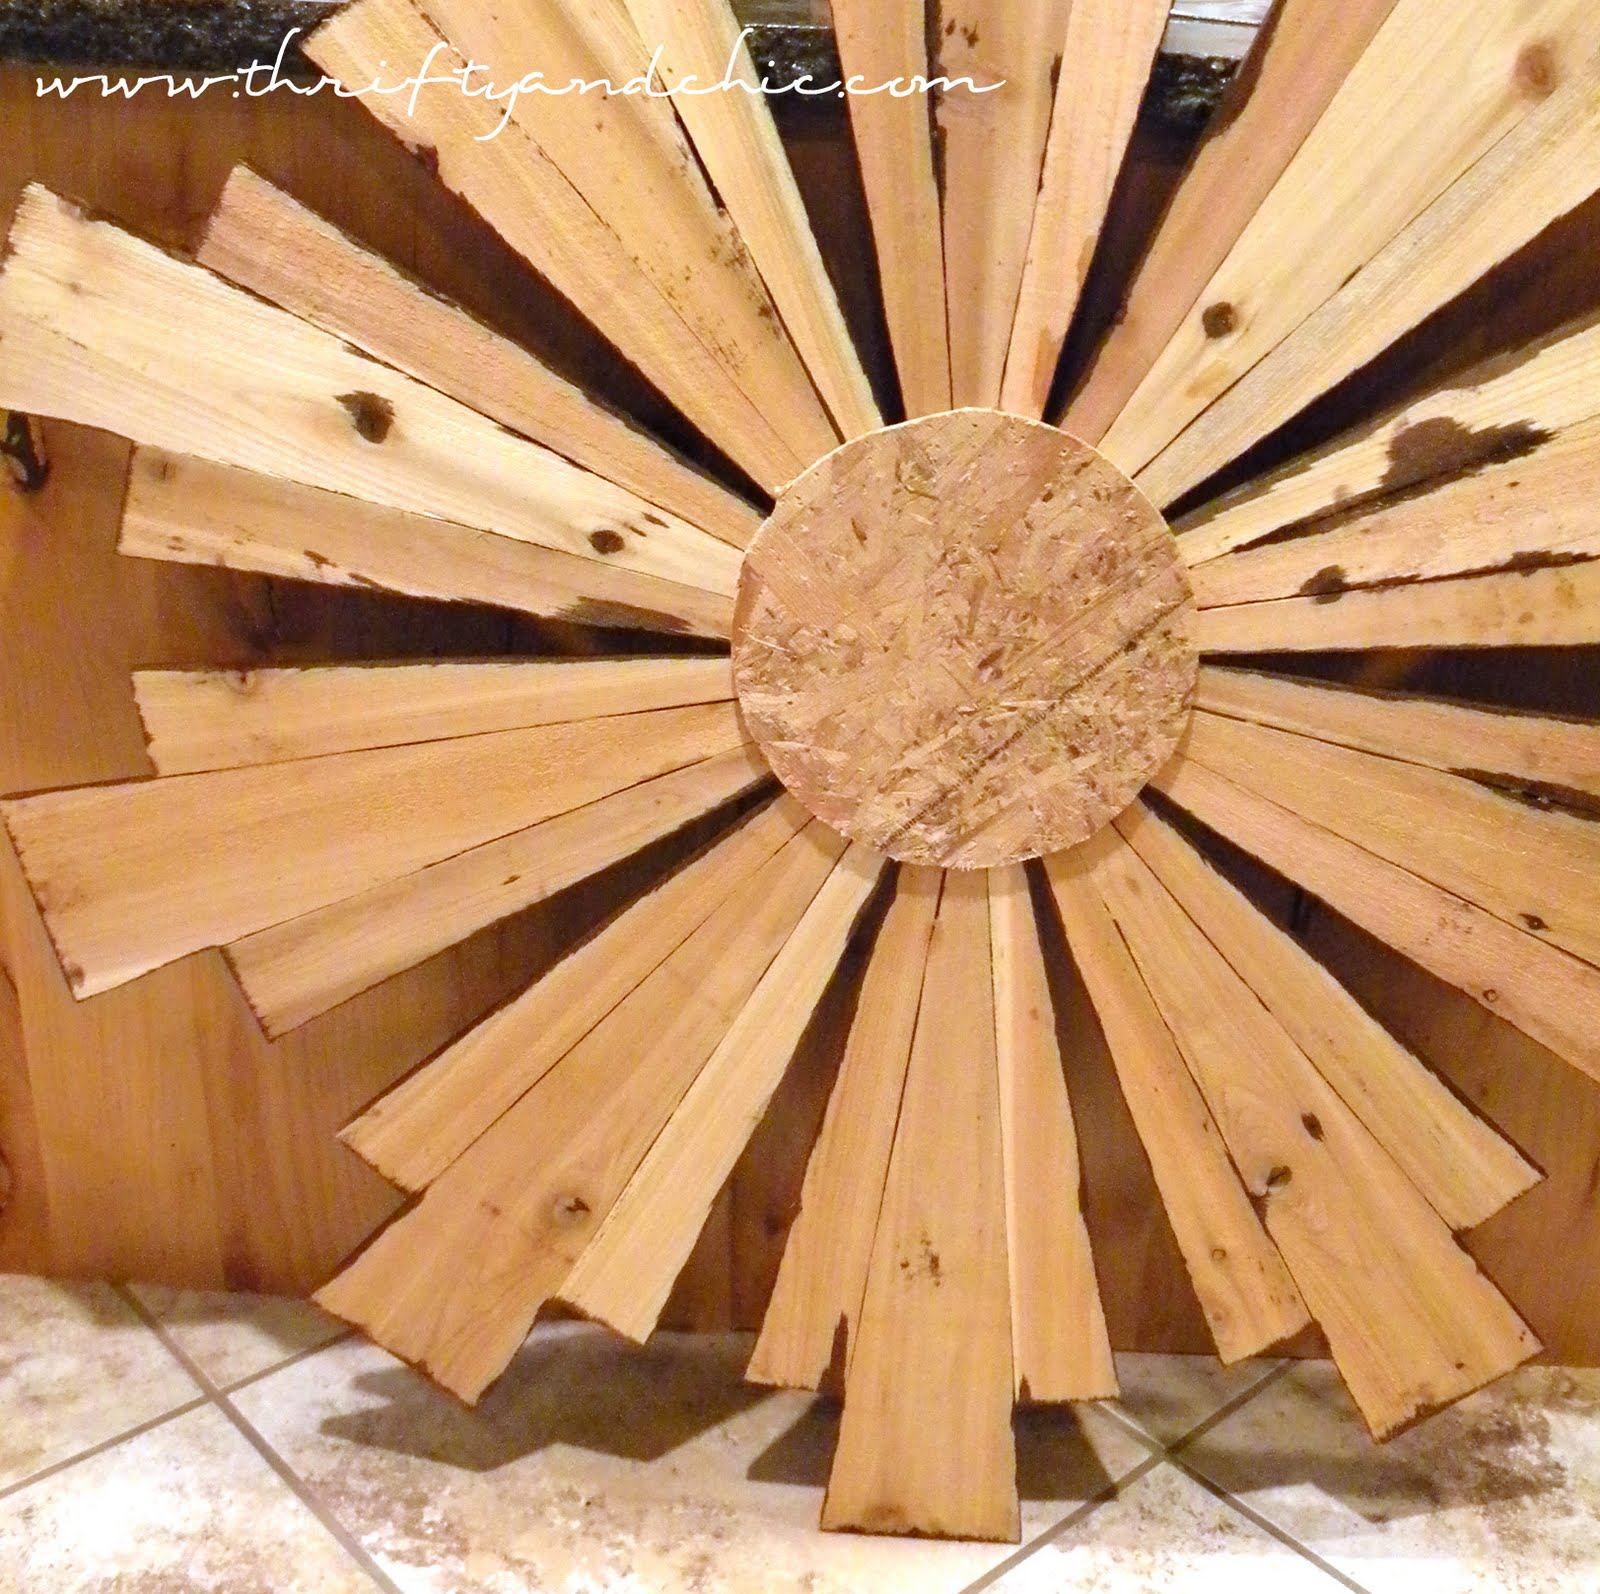 thrifty and chic diy projects and home decor sunburst mirror ballard designs knock off made from cedar planks only for 11